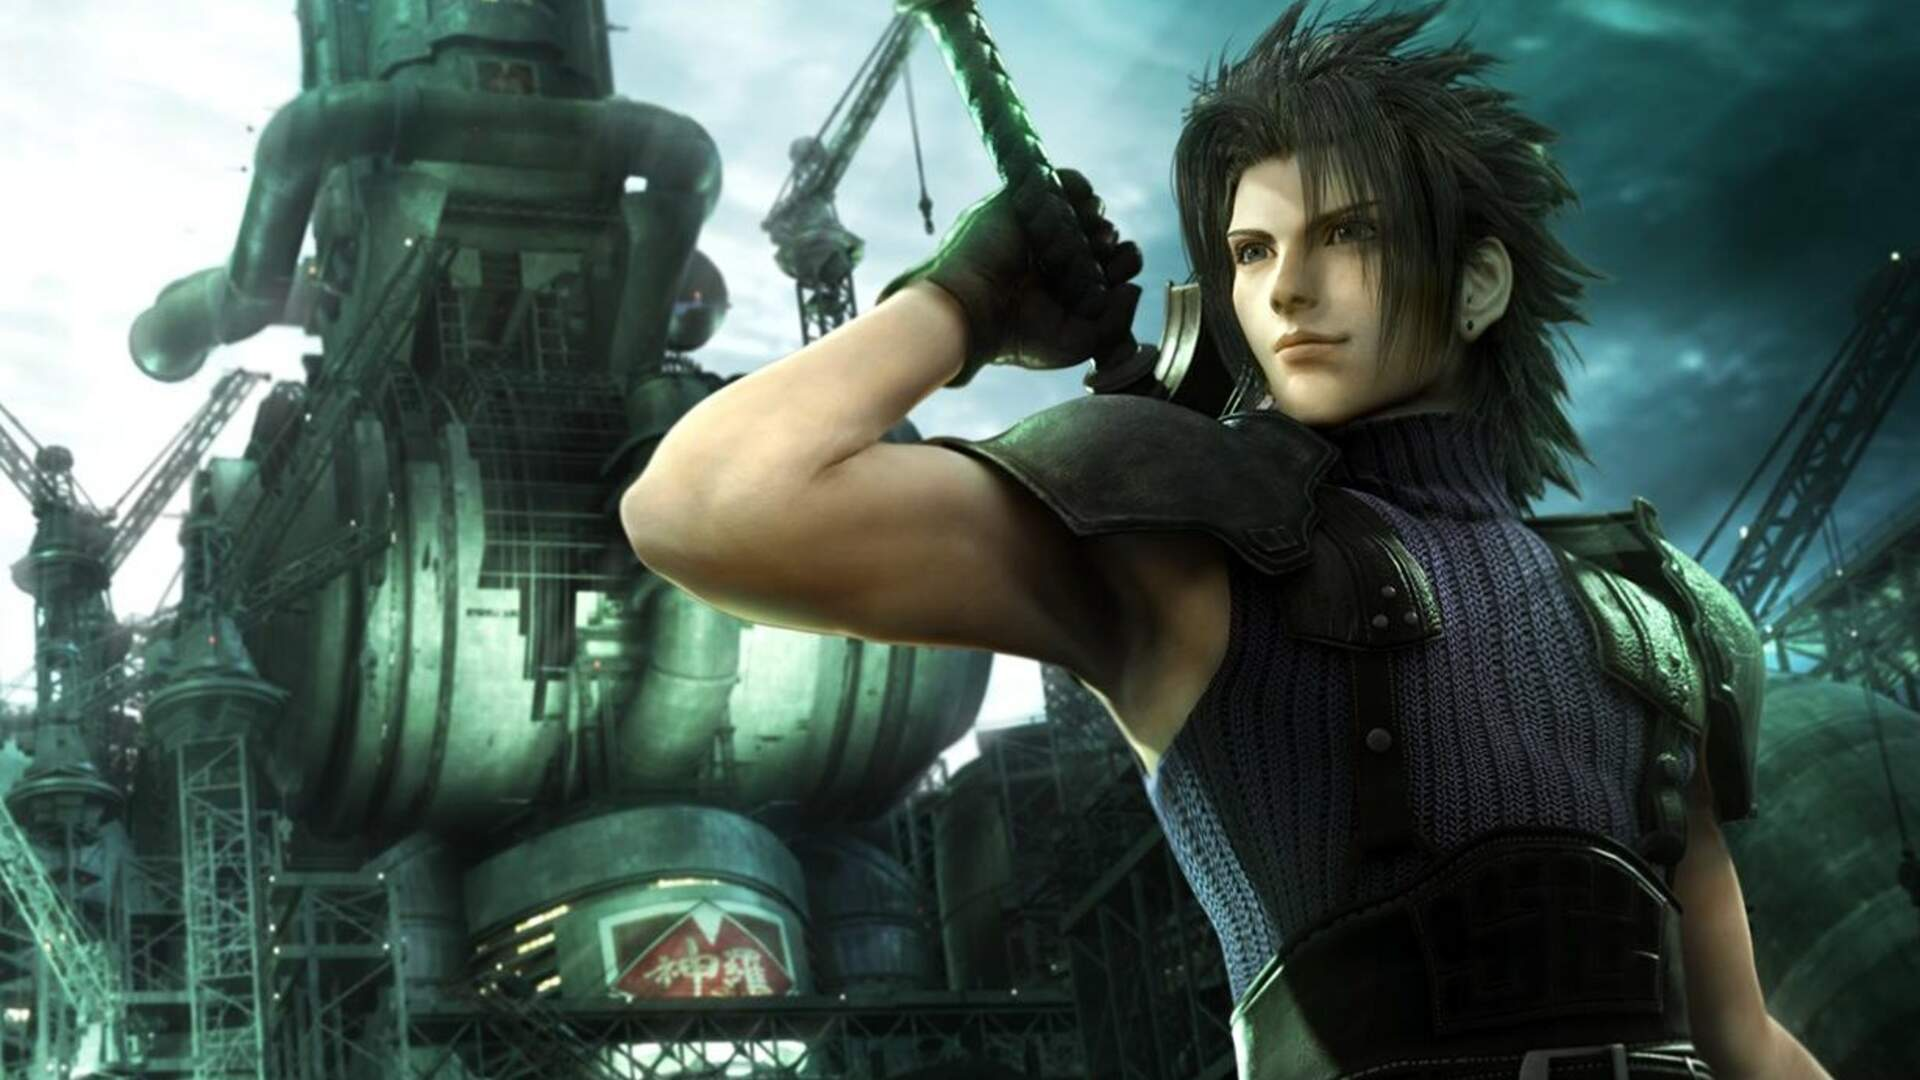 Final Fantasy 7 Remake's Demo Has a Hidden Easter Egg That Links to Crisis Core